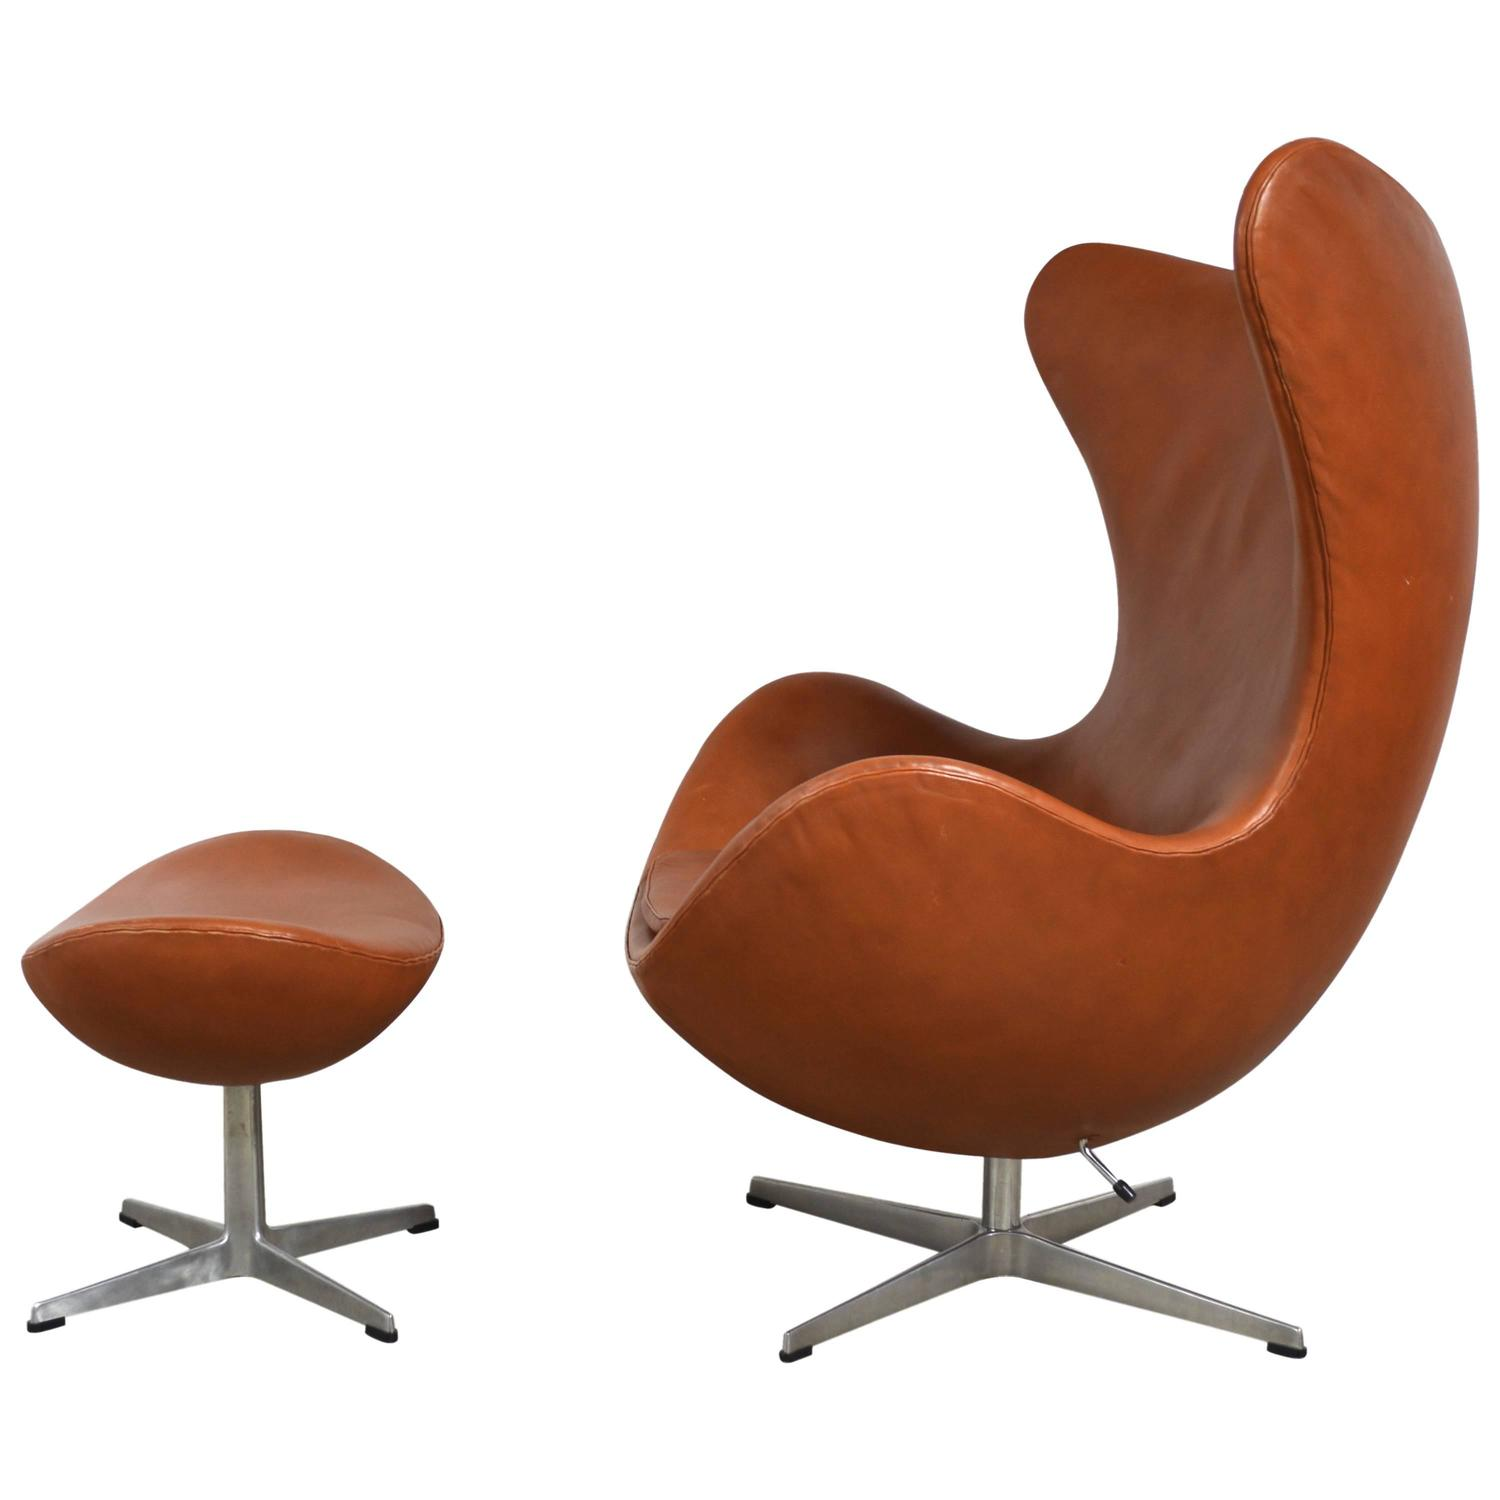 jacobsen egg chair leather krueger folding chairs arne and ottoman at 1stdibs